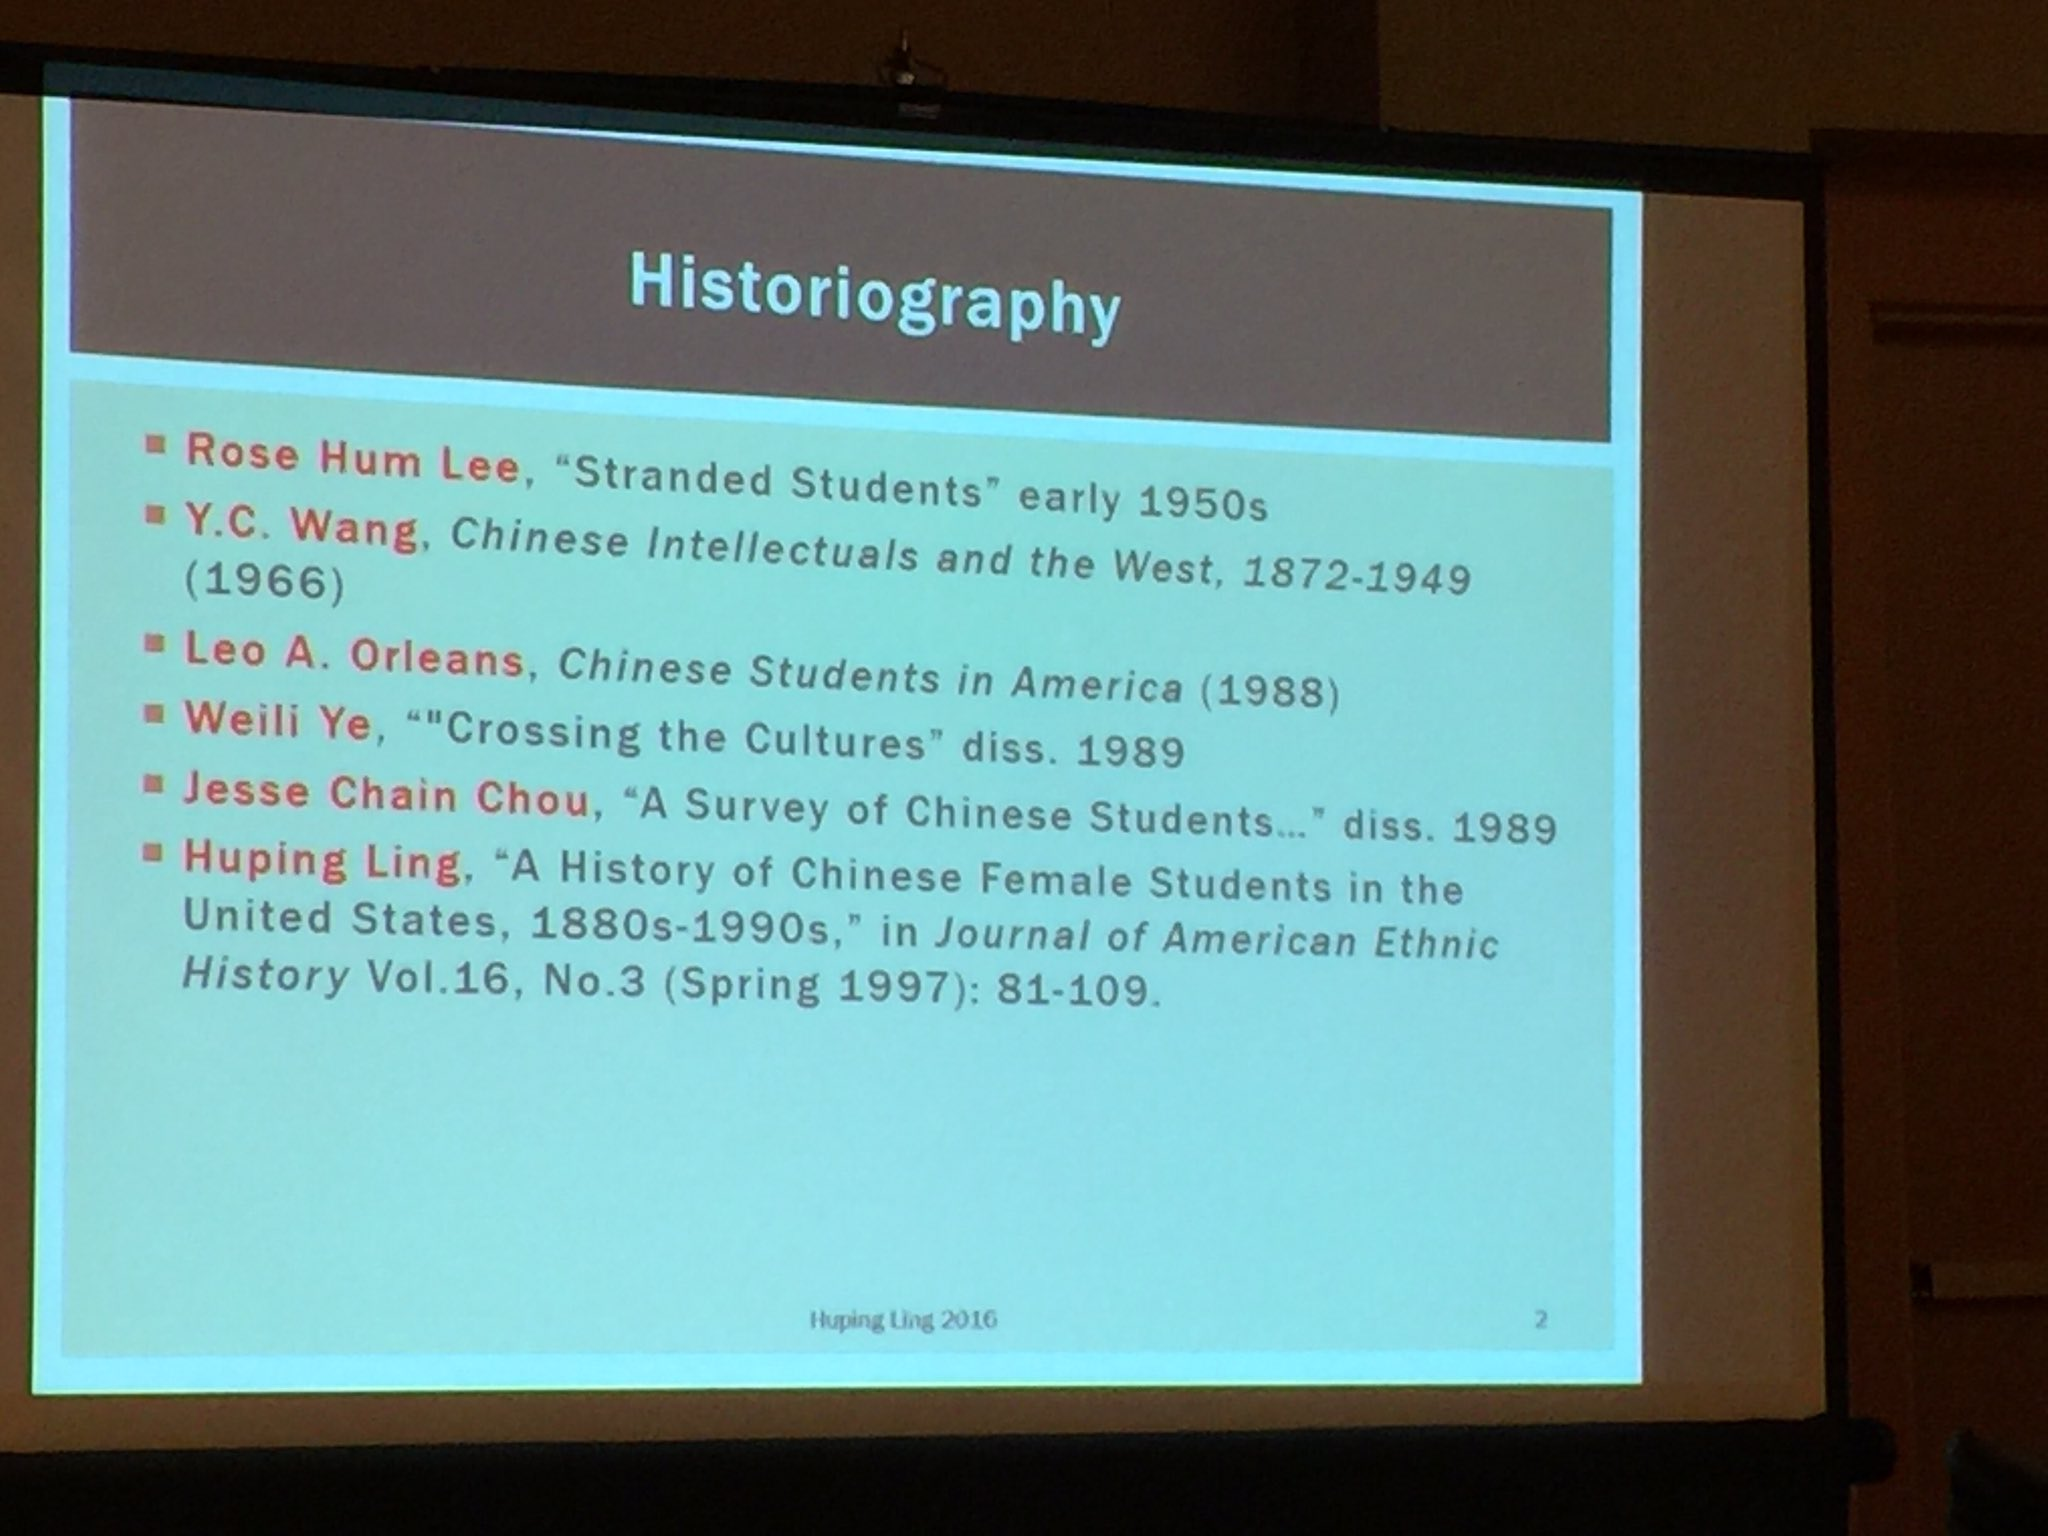 #ISSCO2016 Panel 4 Ling: running through historiography of Chinese students overseas, most on male students only. https://t.co/HoqCvFknSQ